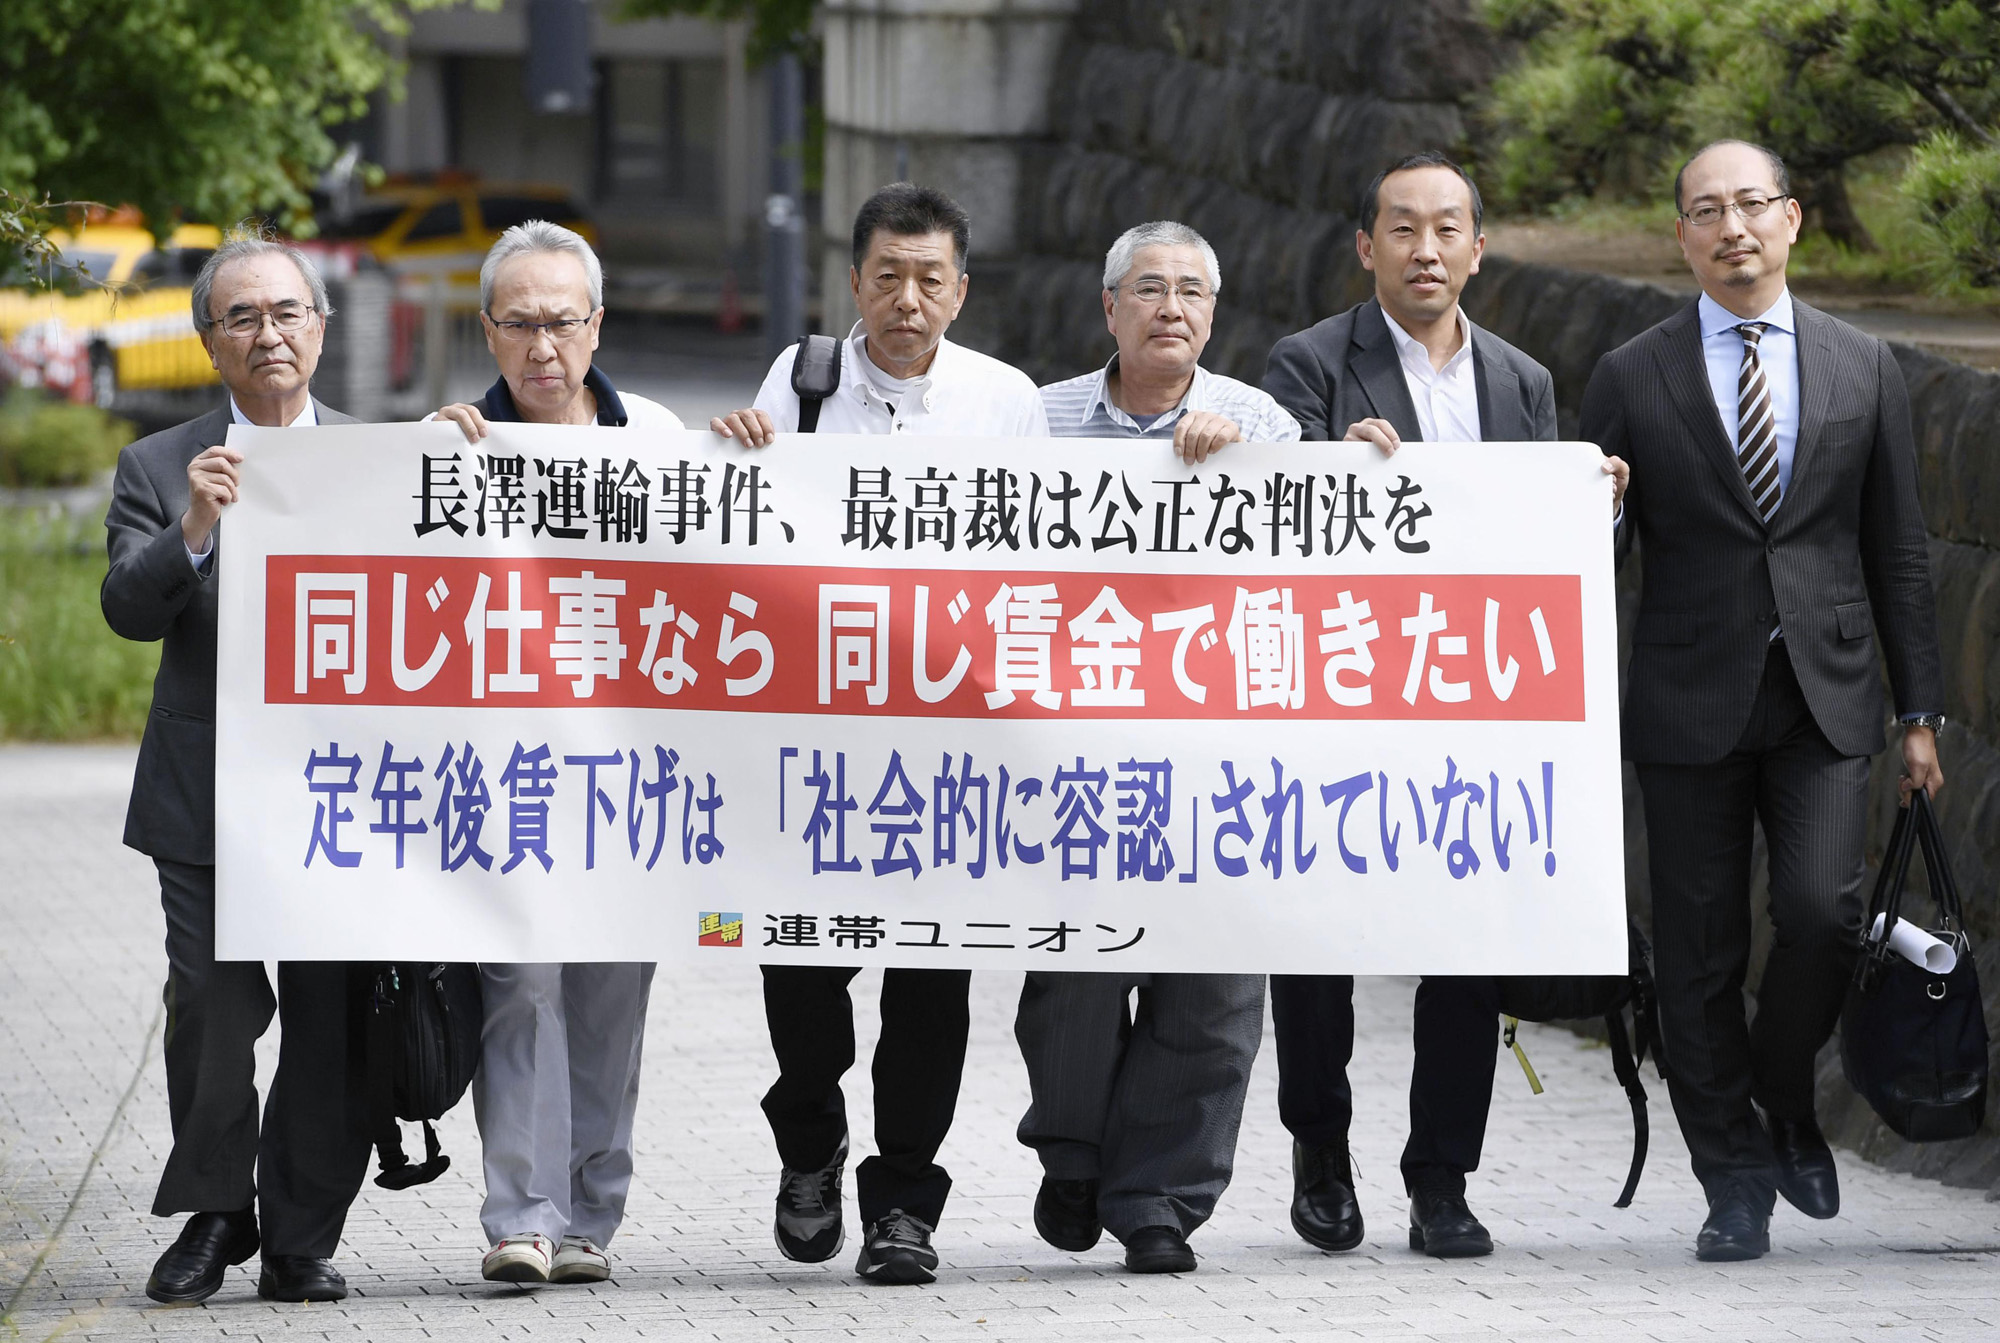 Driven to court: The three truckers in the Nagasawa-Unyu case, flanked by their lawyers, arrive at the Supreme Court on June 1 holding a banner calling for equal pay for equal work. | KYODO